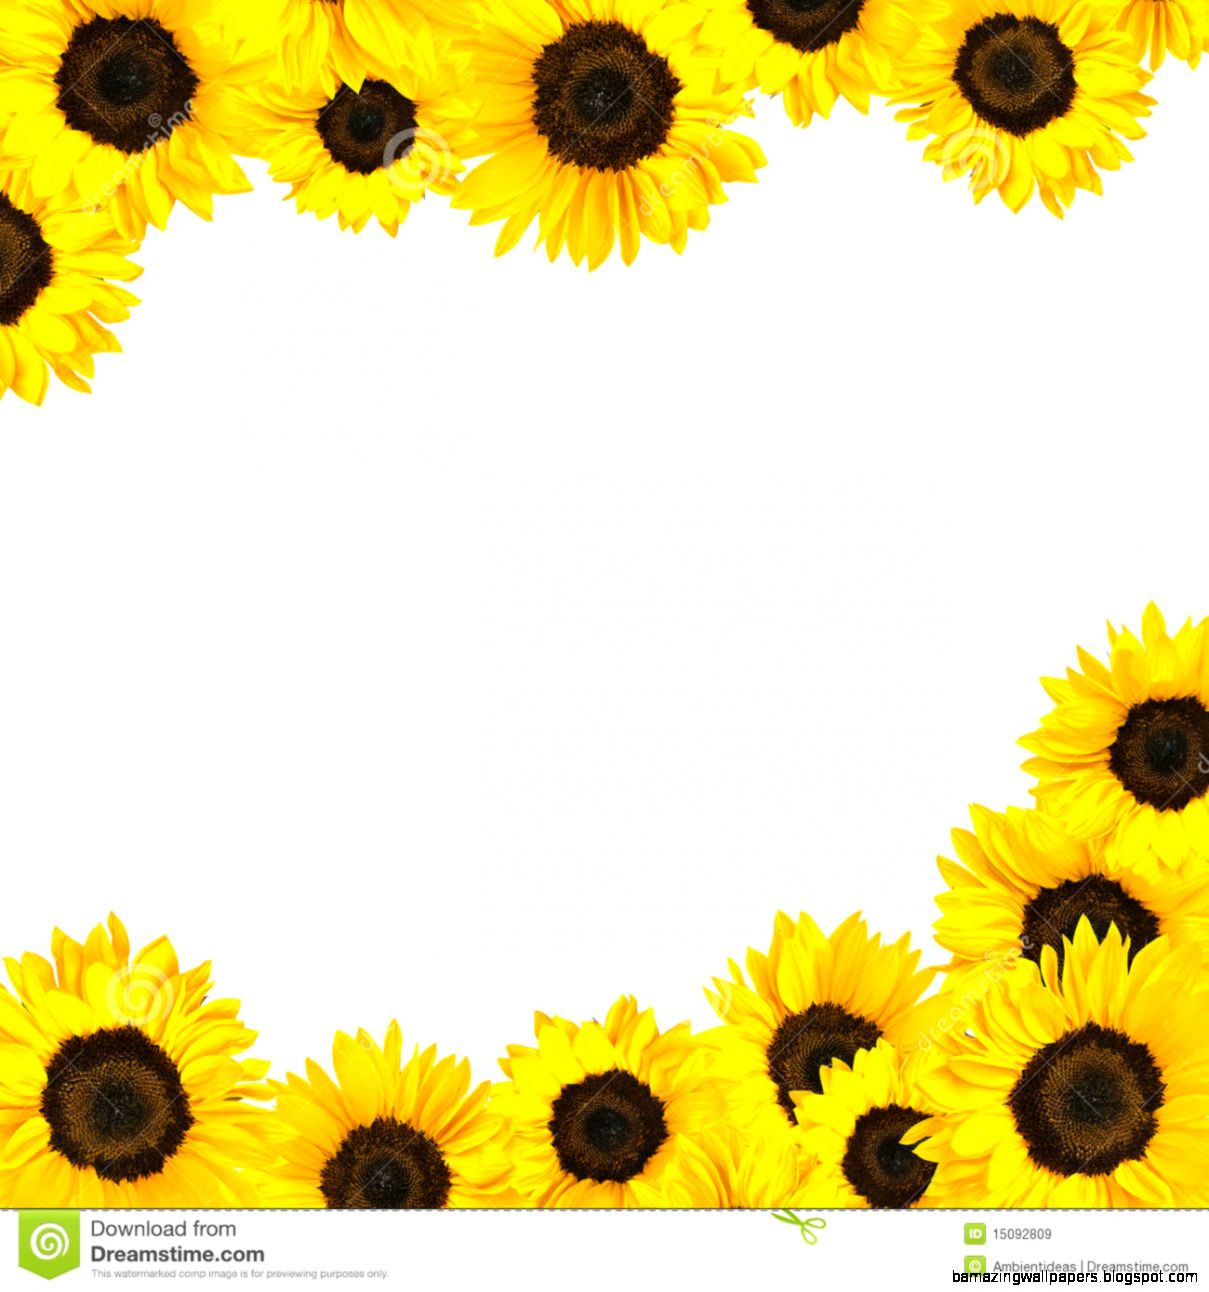 sunflower border clipart amazing wallpapers rh bamazingwallpapers blogspot com  sunflower border clip art free downloadable